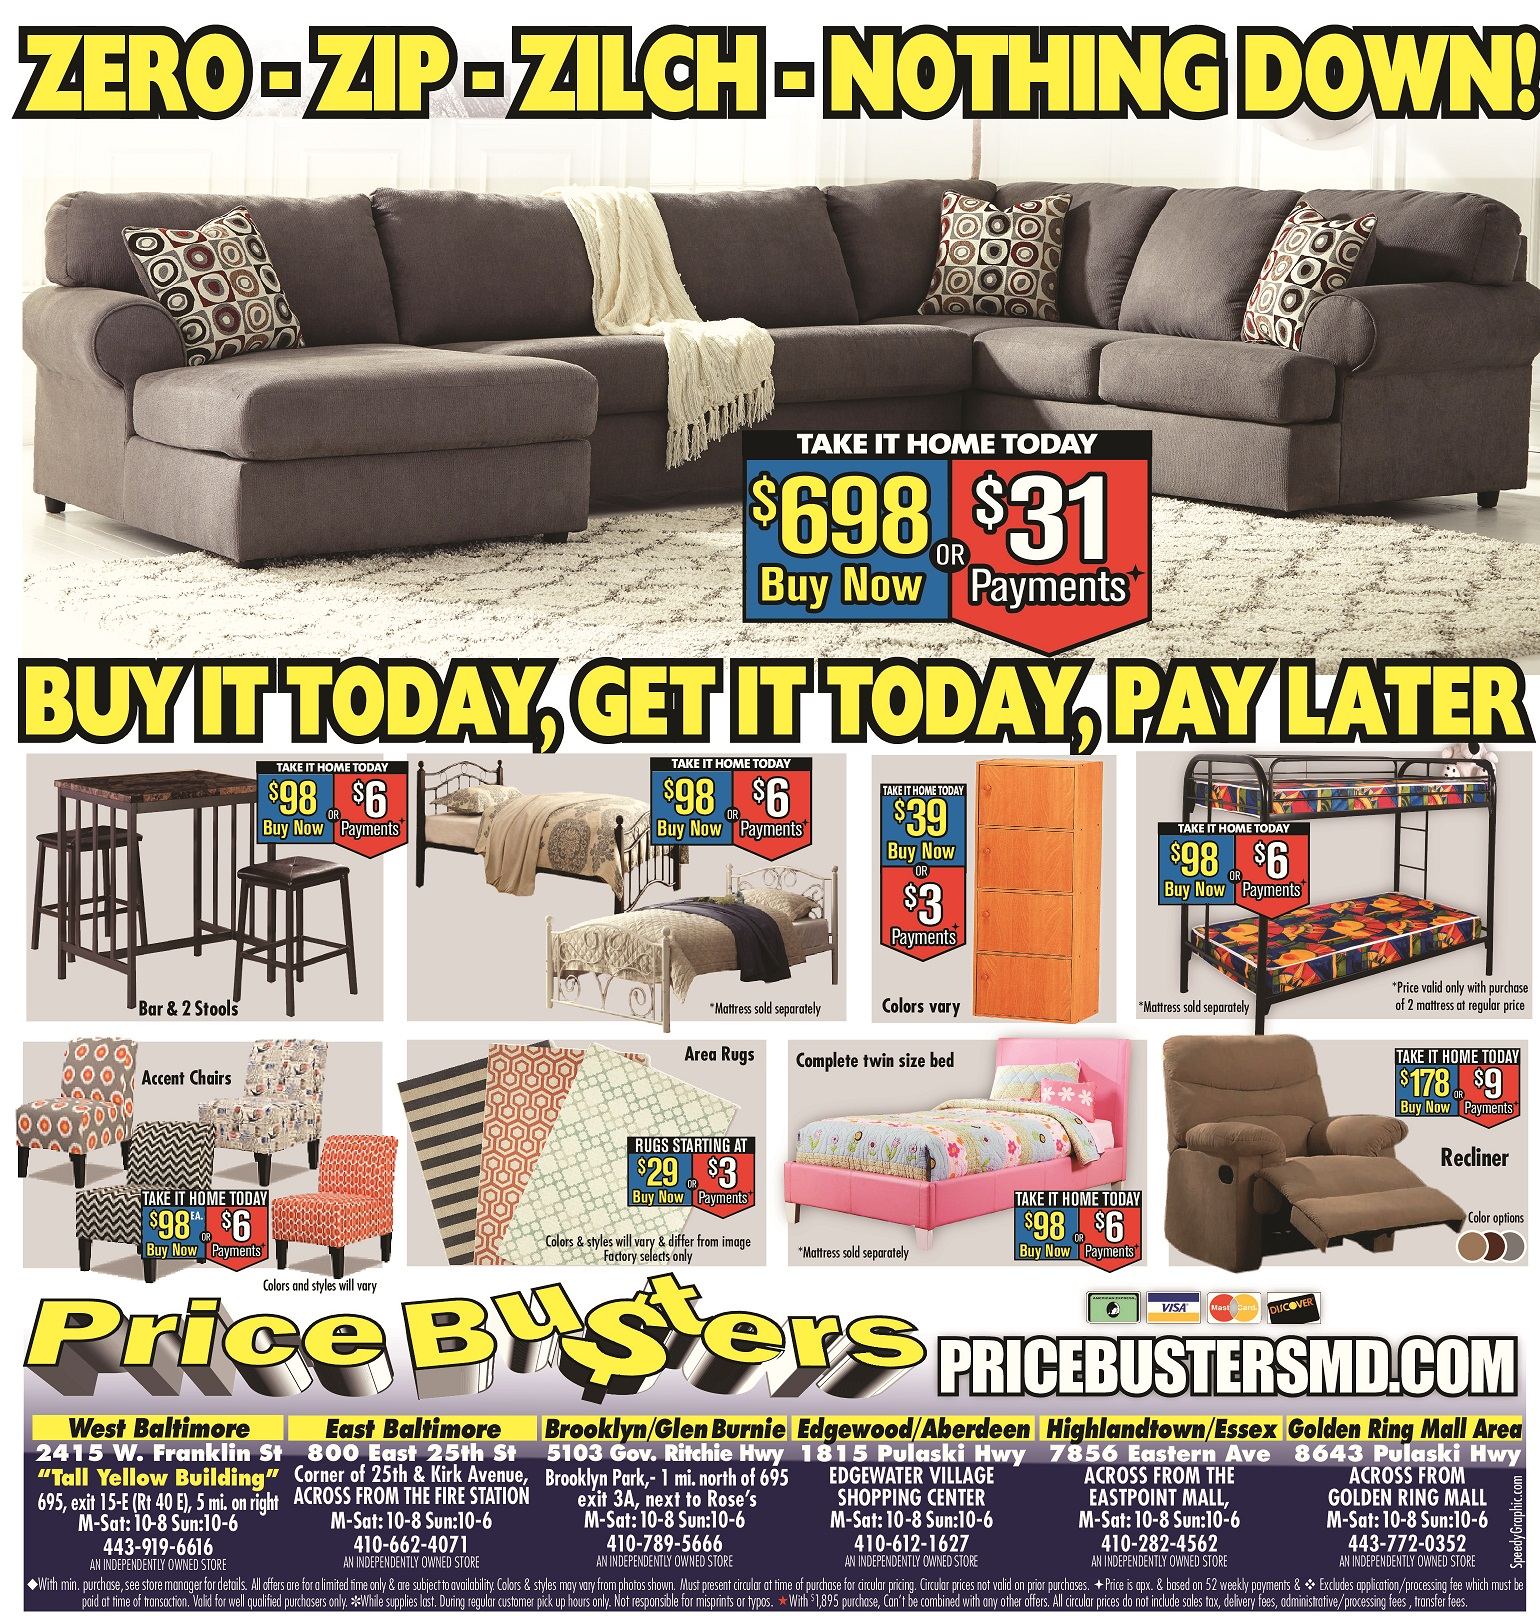 Now Pay Later Bedroom Furniture Price Busters Discount Furniture Bedroom Furniture Hyattsville